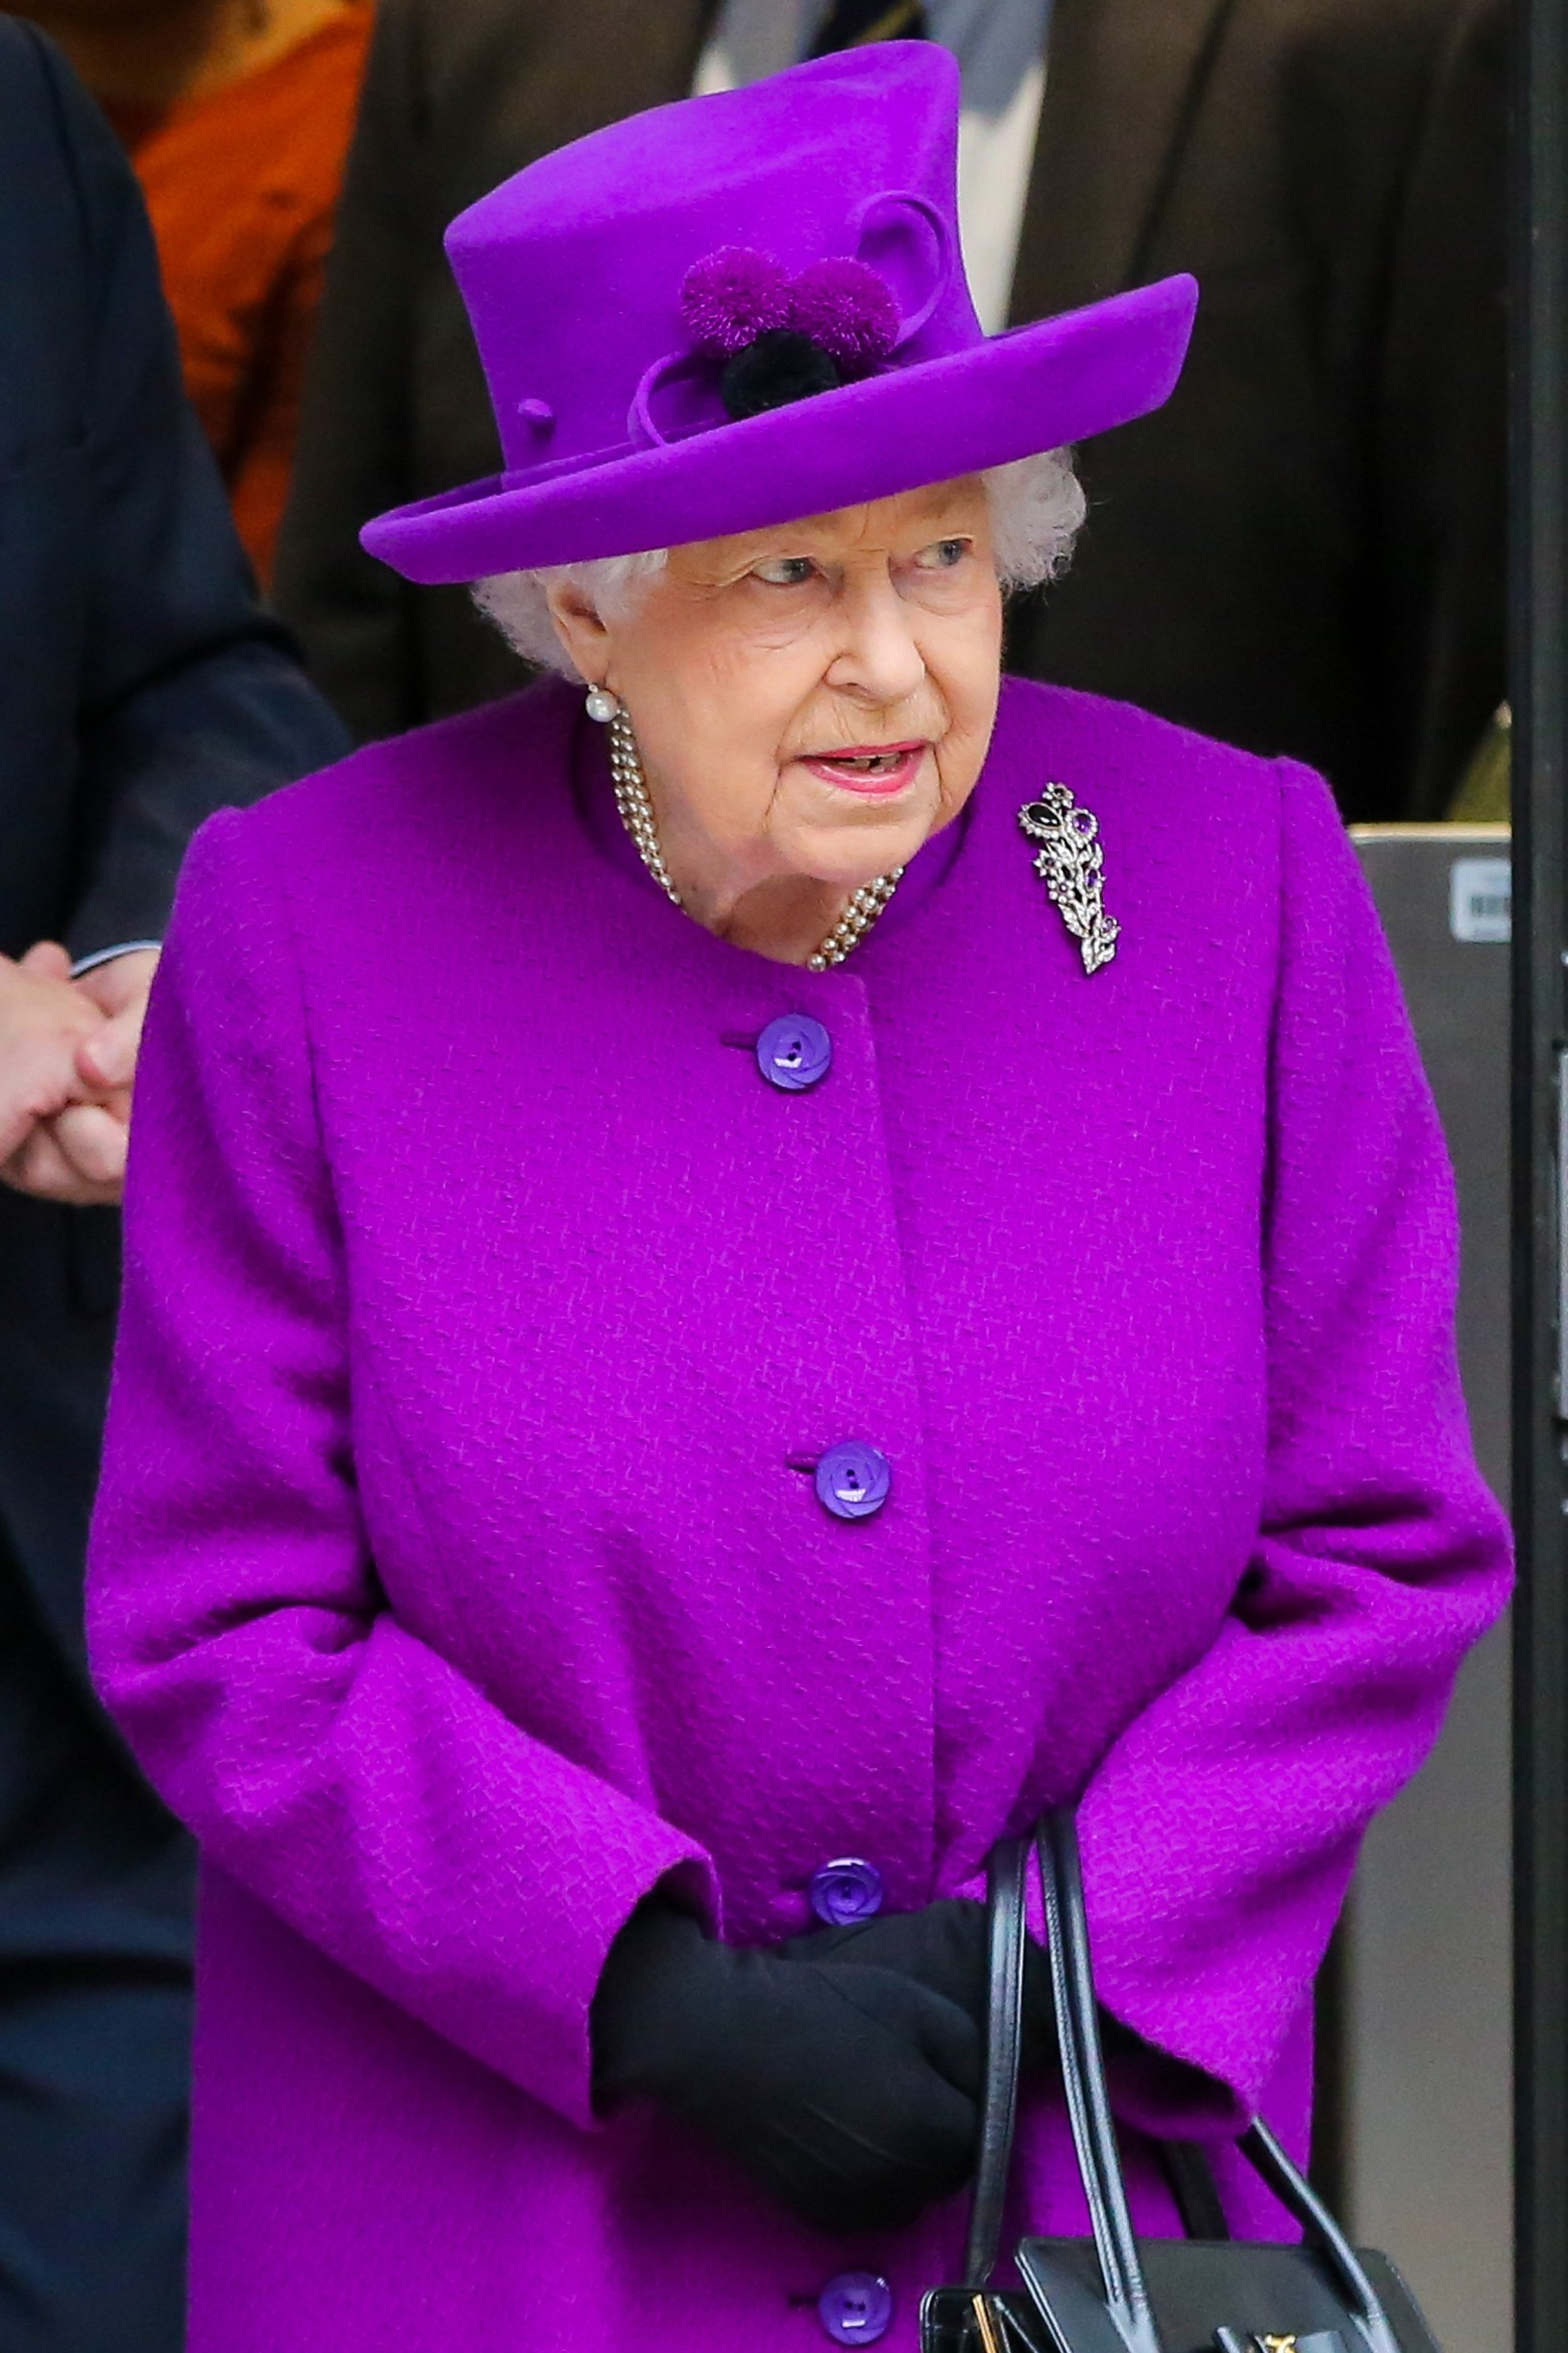 length coat and purple coloured hat leaves after the opening the new premises of the Royal National Throat, Nose and Ear hospital and Eastman Dental Hospital in central London. 19 Feb 2020, Image: 499652781, License: Rights-managed, Restrictions: NO Argentina, Australia, Bolivia, Brazil, Chile, Colombia, Finland, France, Georgia, Hungary, Japan, Mexico, Netherlands, New Zealand, Poland, Romania, Russia, South Africa, Uruguay, Model Release: no, Credit line: ZUMAPRESS.com / MEGA / The Mega Agency / Profimedia